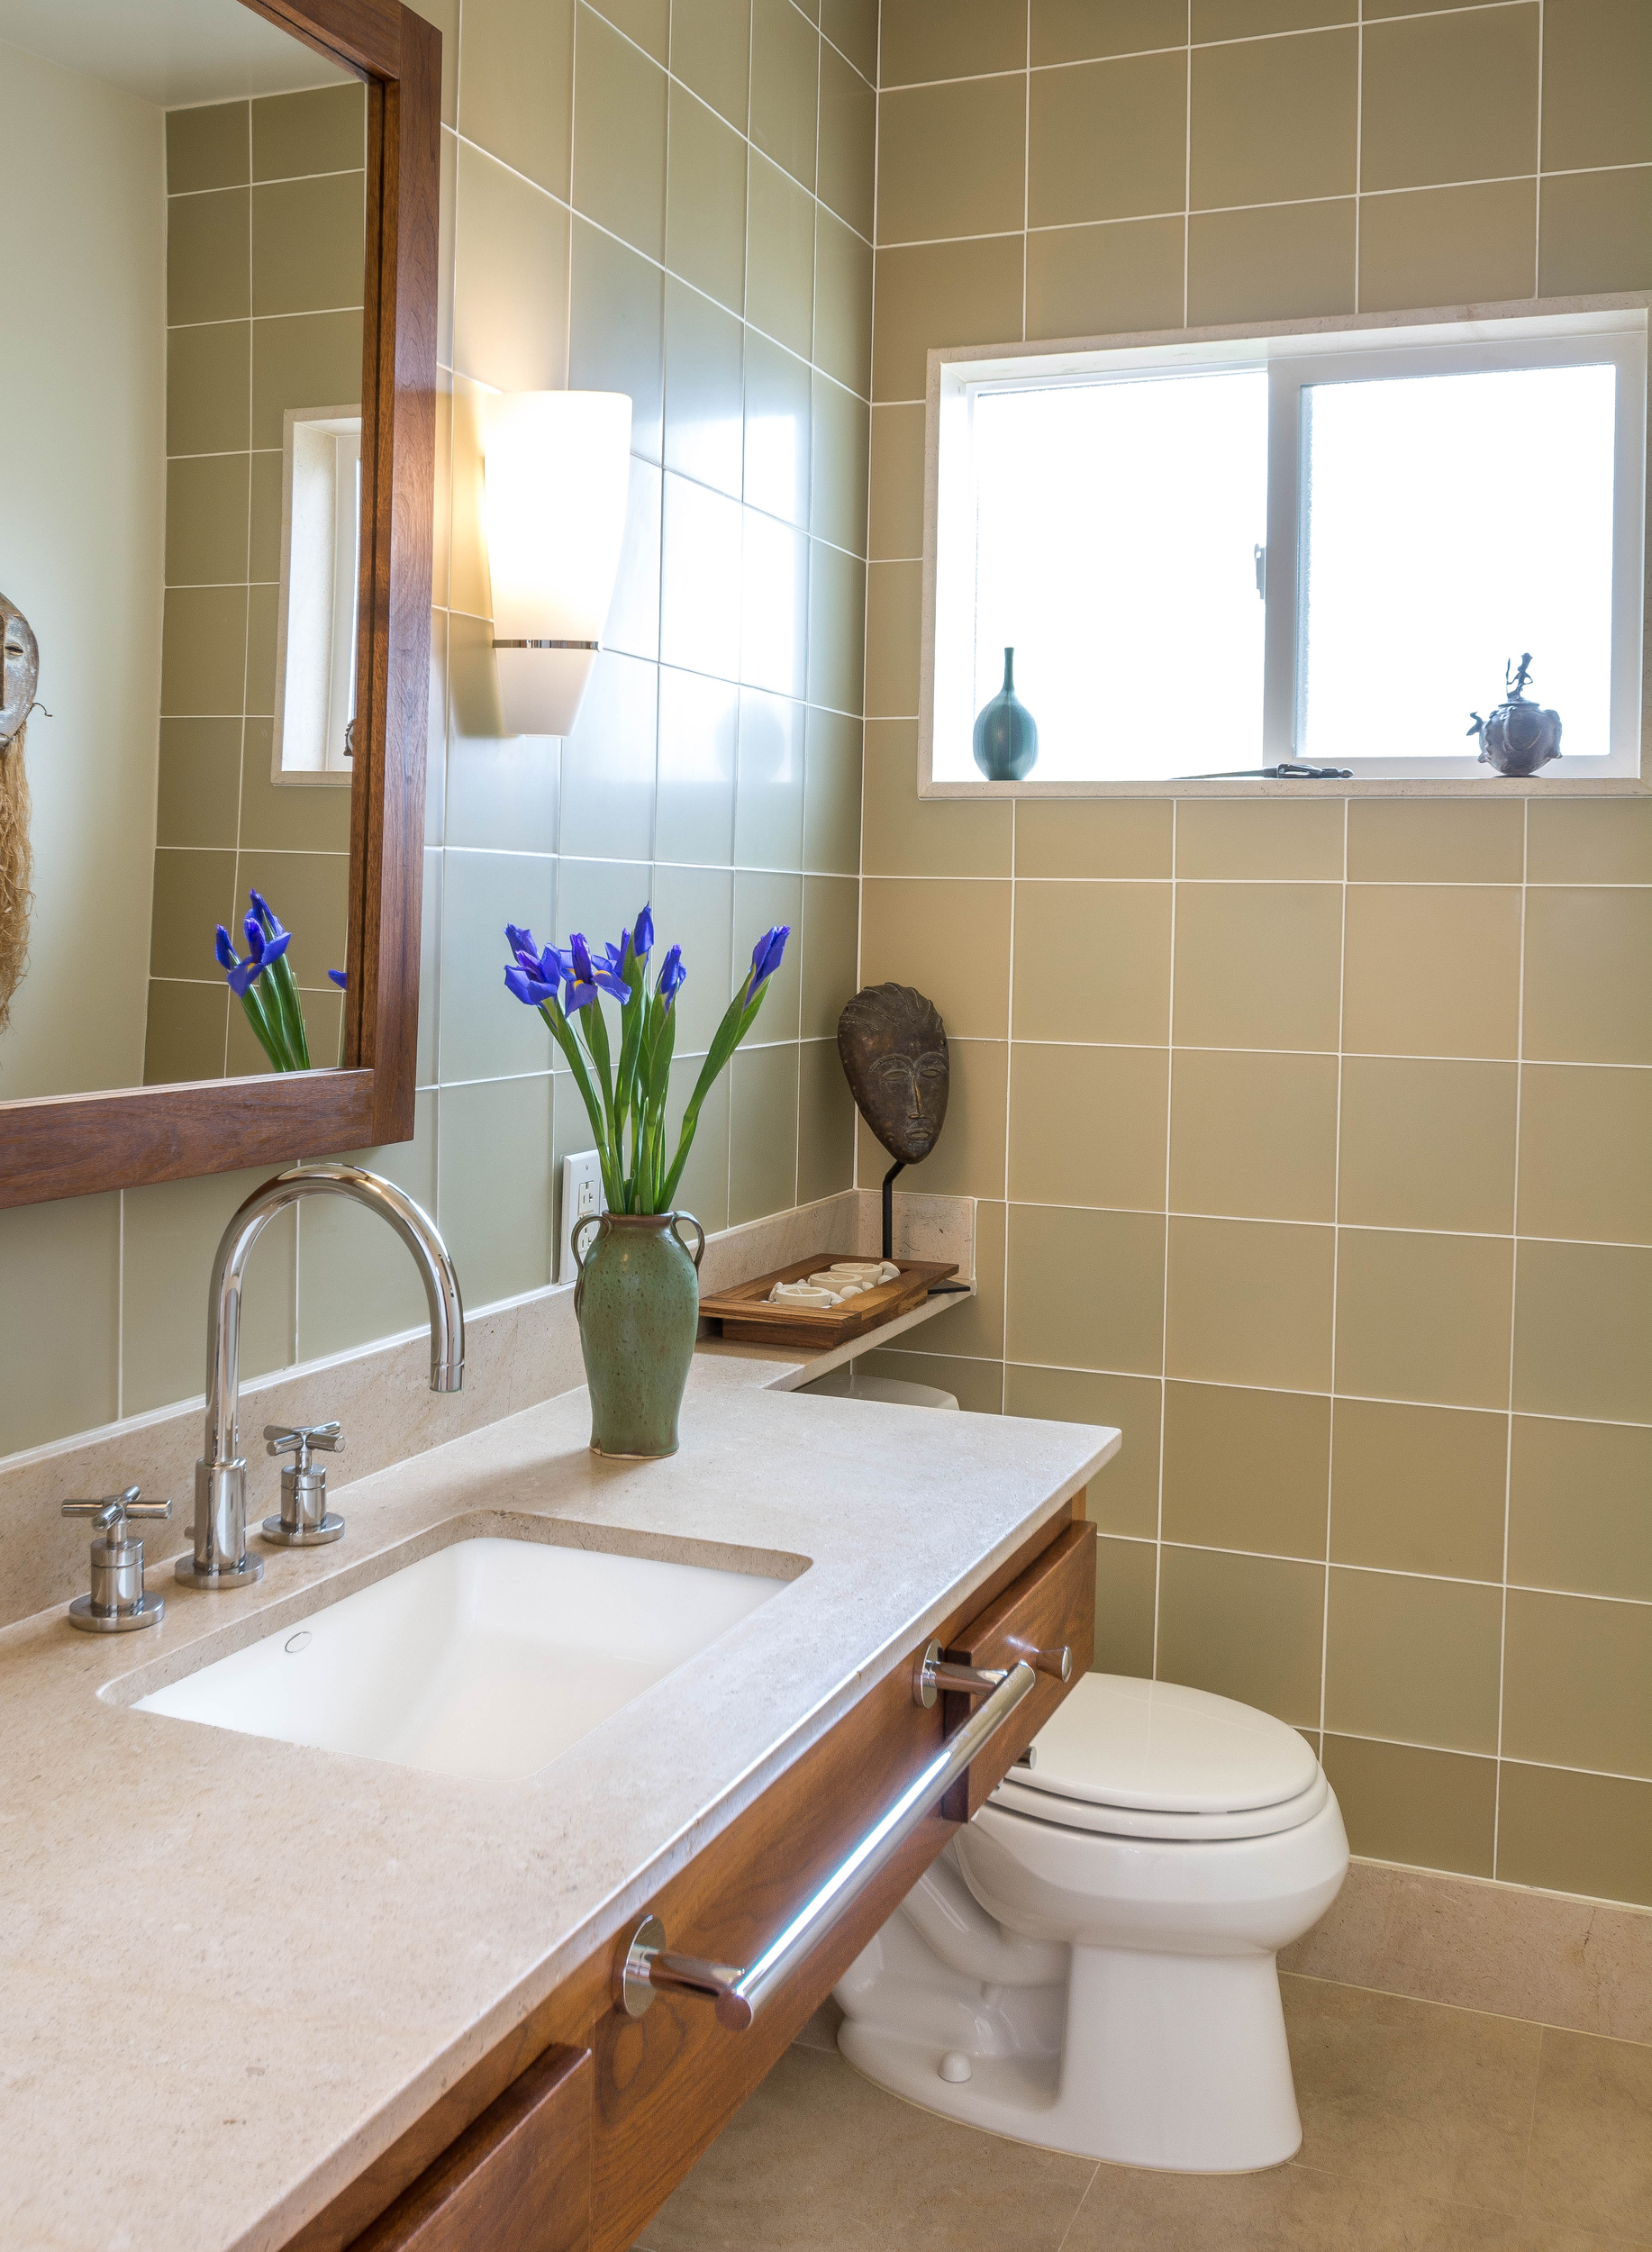 Powder room remodel using matte glass tiles and limestone